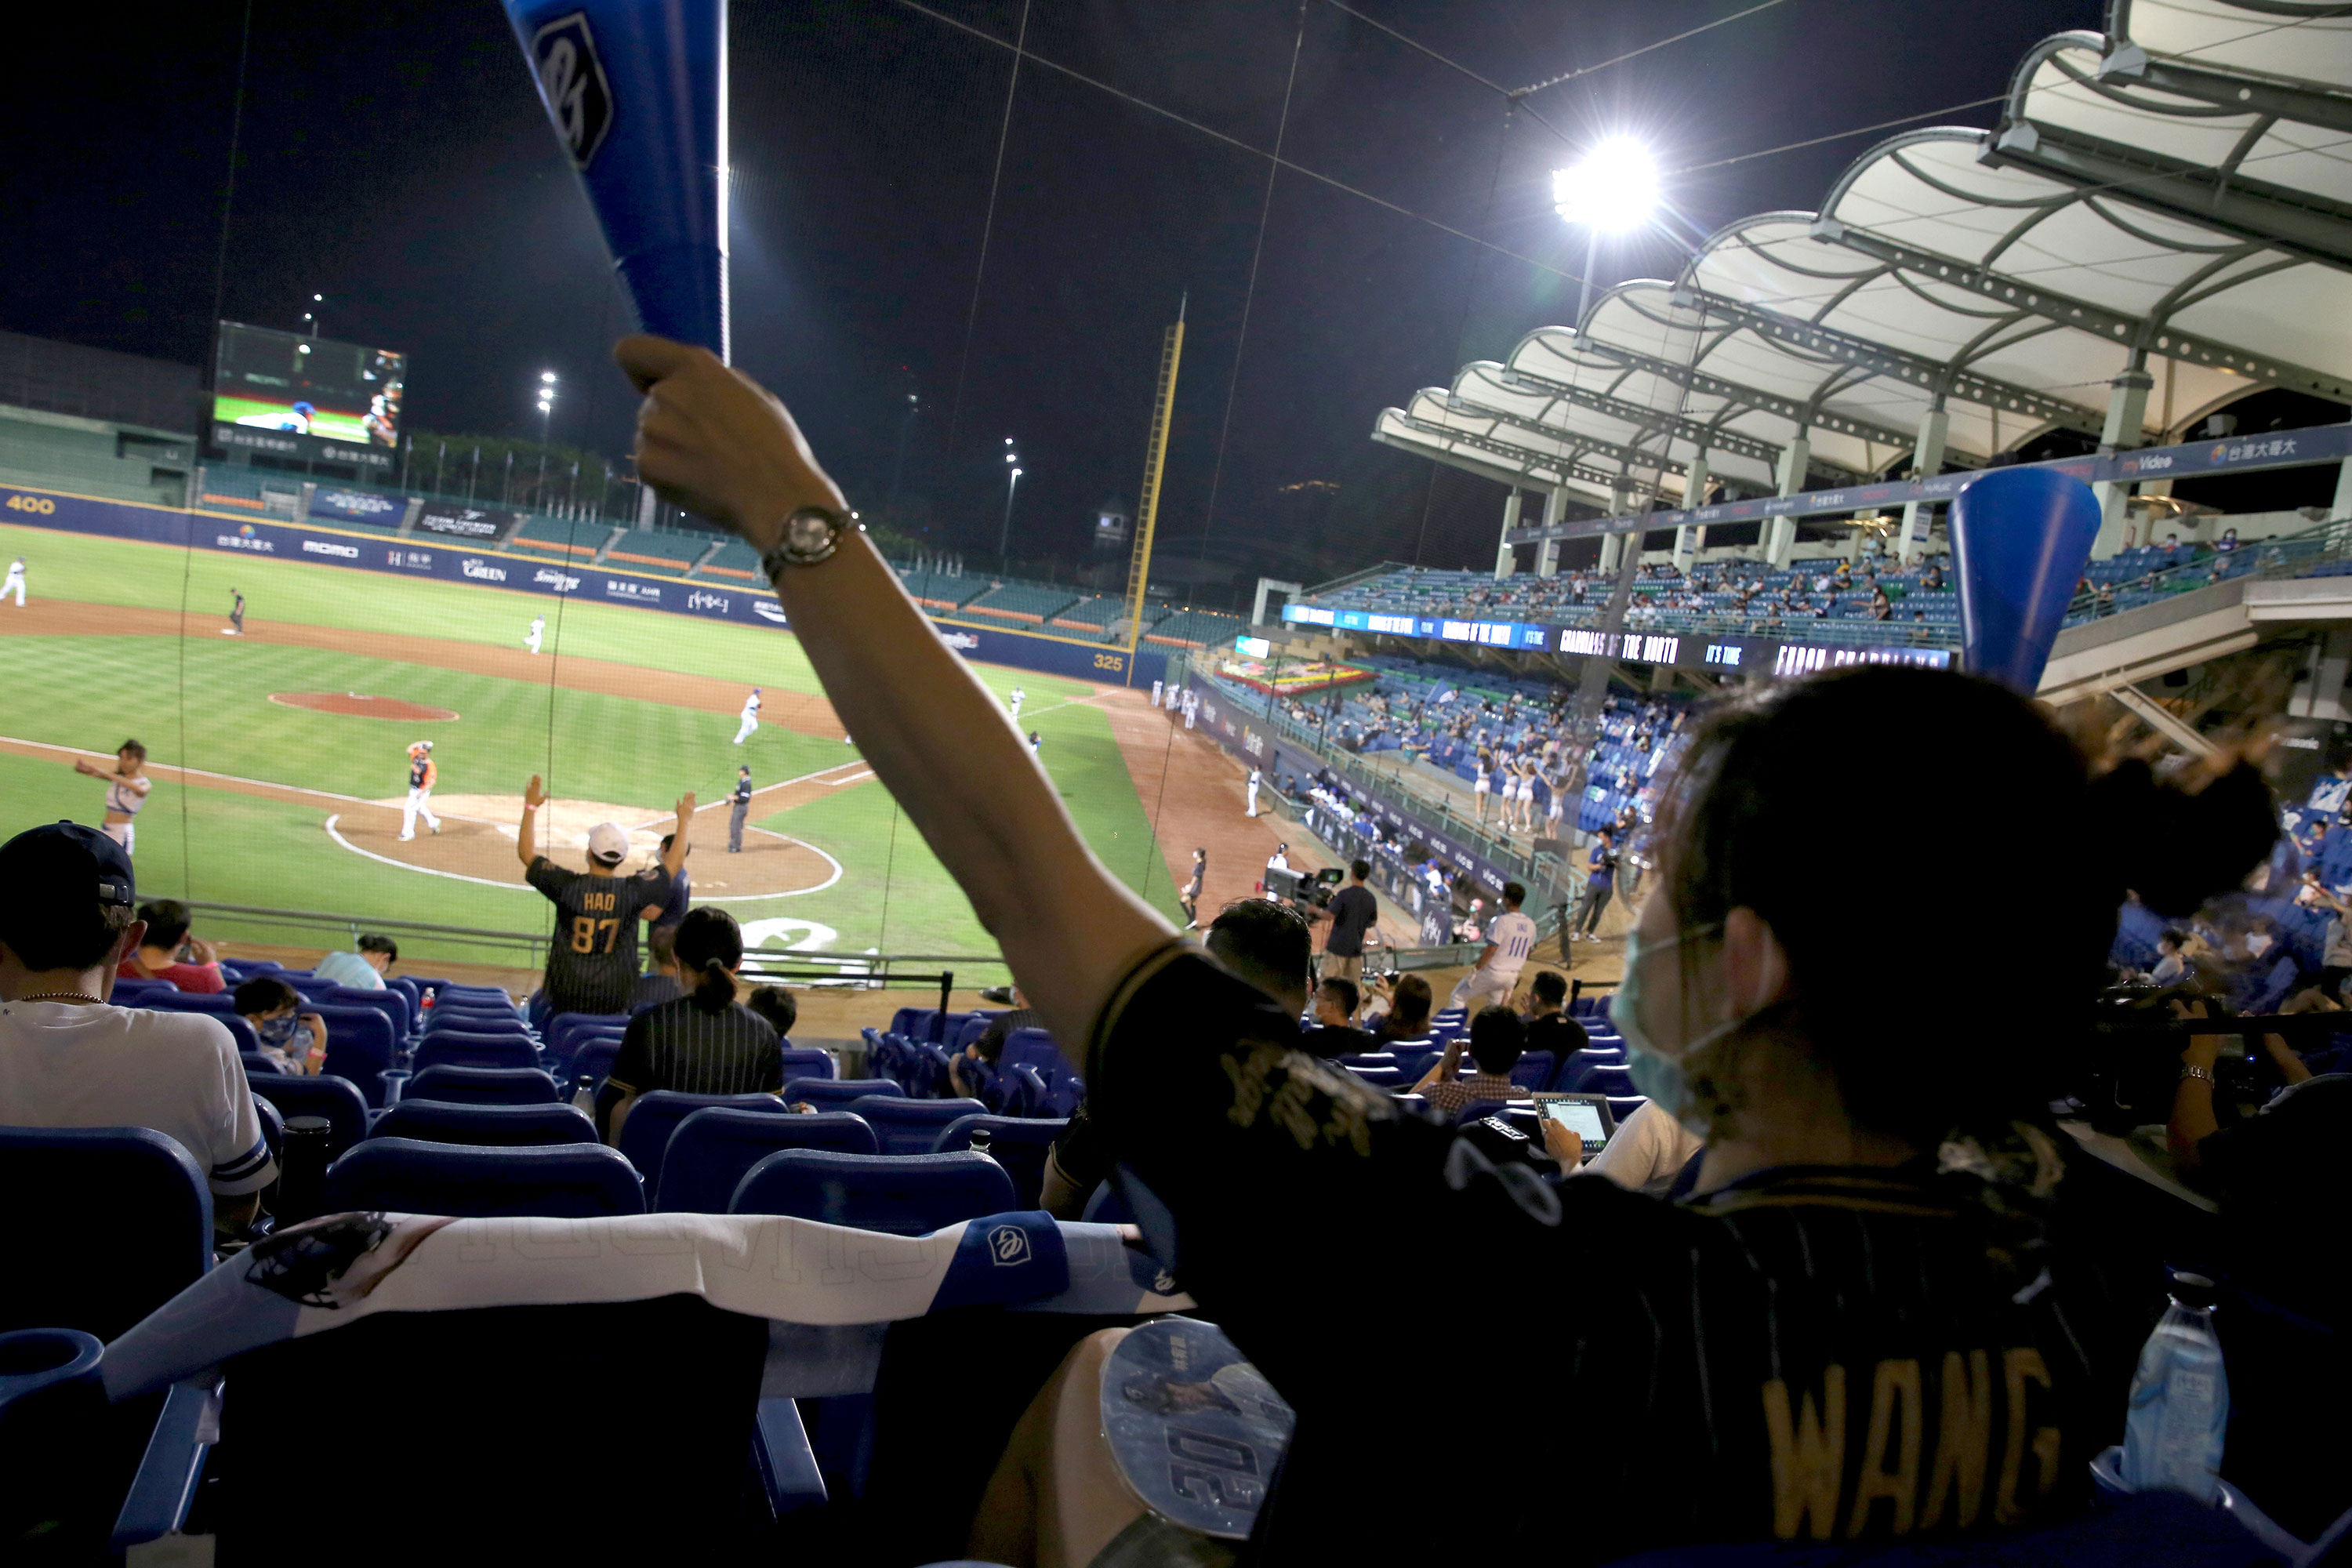 Fans cheer during the game between Fubon Guardians and Uni-President Lions at Xinzhuang Baseball Stadium in New Taipei City on May 8.